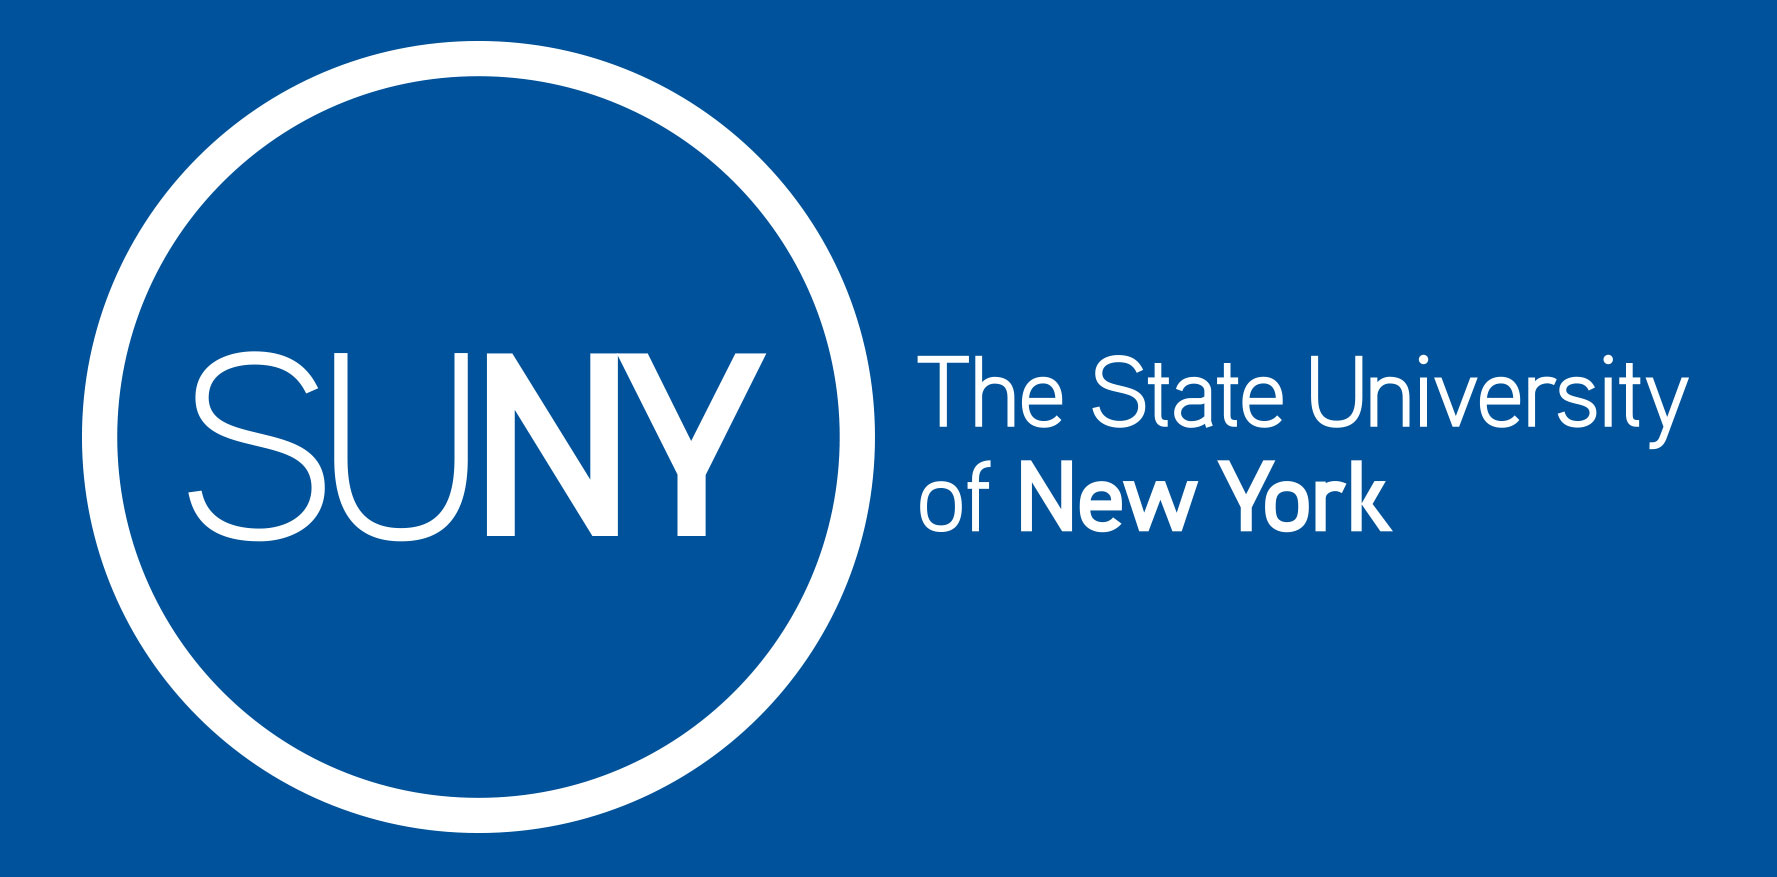 Click Here to visit Suny's website to learn more